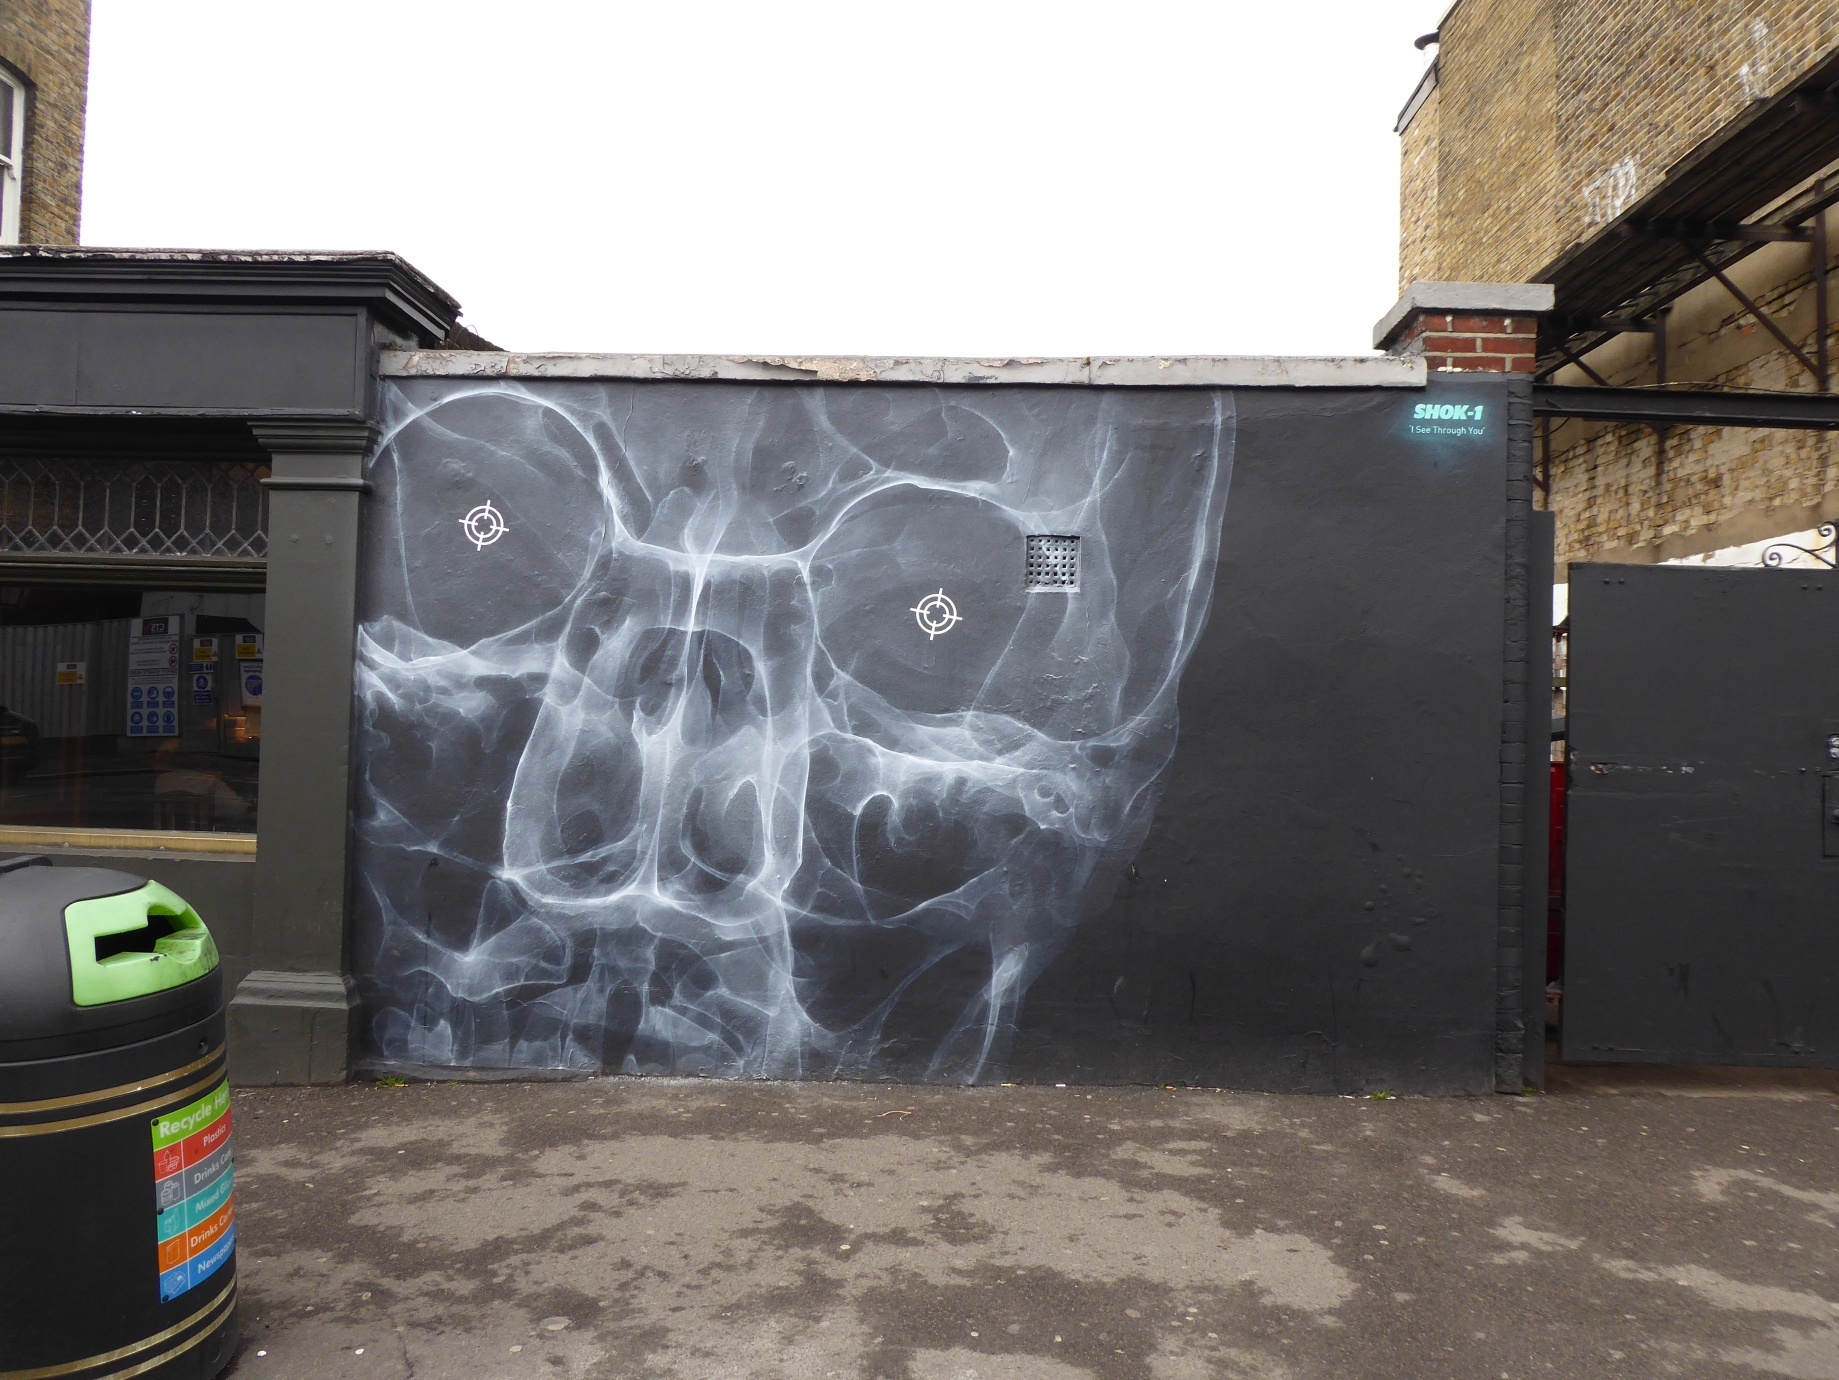 New shok 1 street art see through you in walthamstow